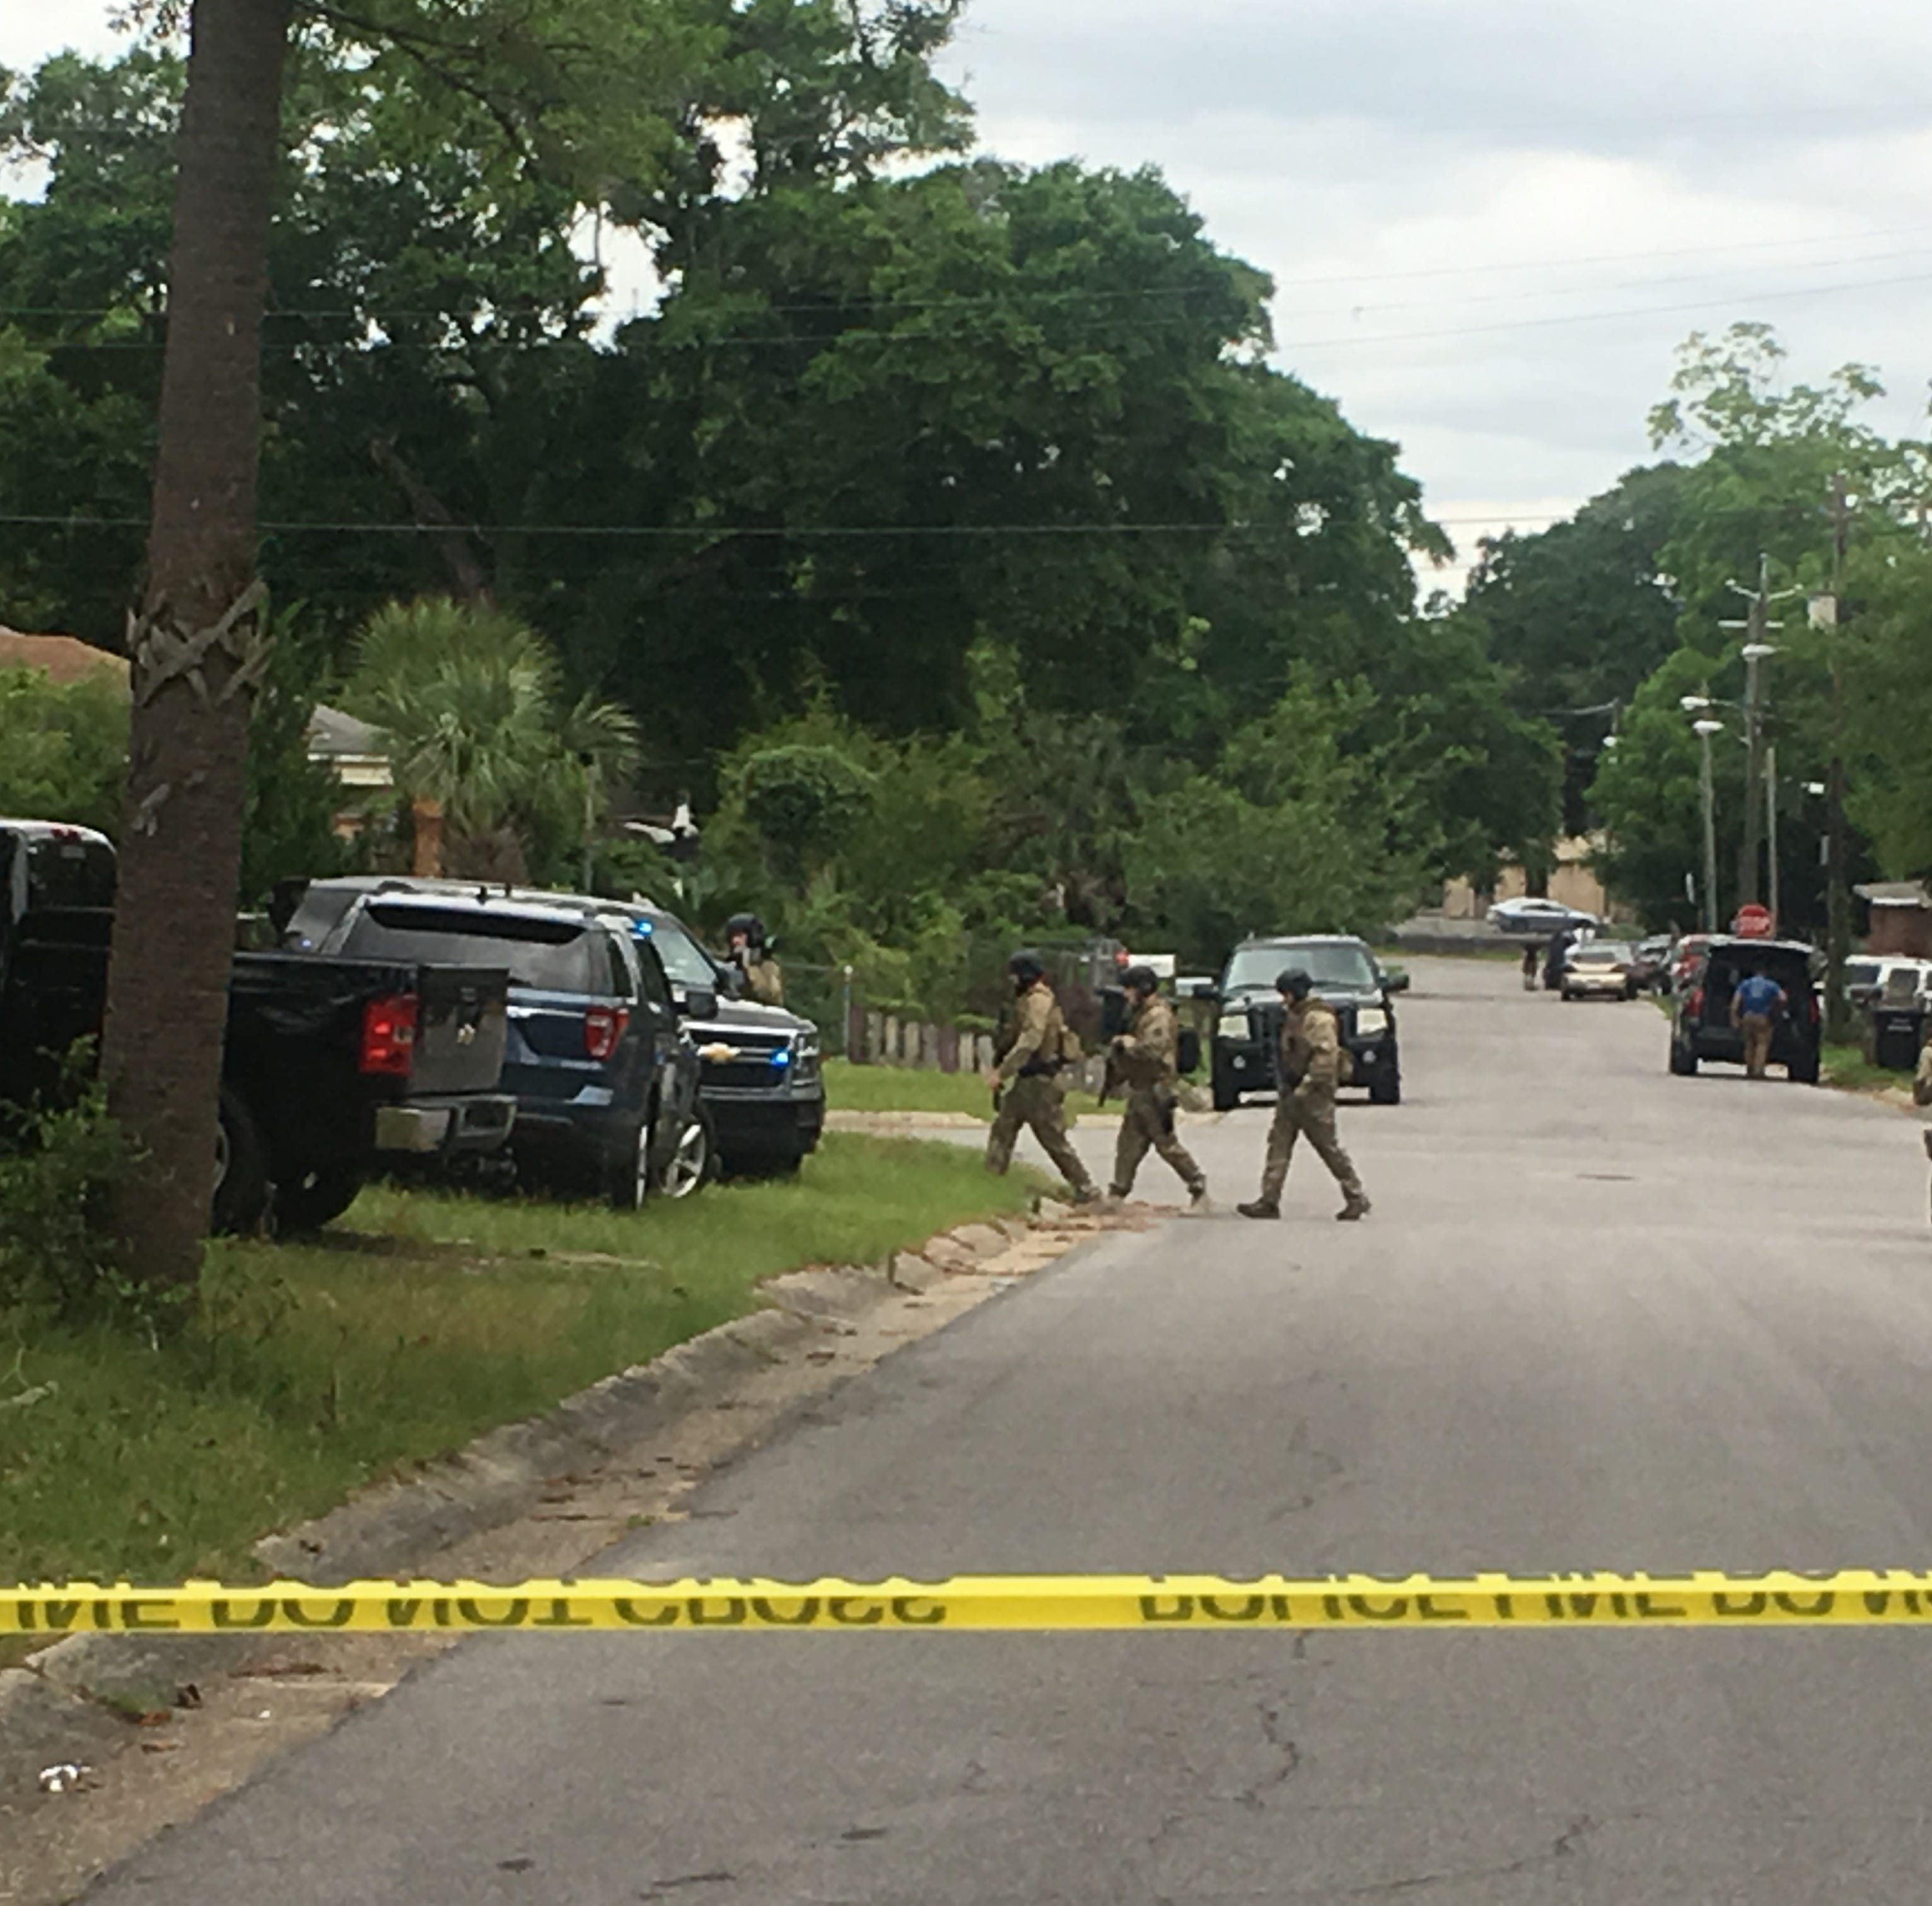 Two people surrender to police after standoff on West Lloyd Street